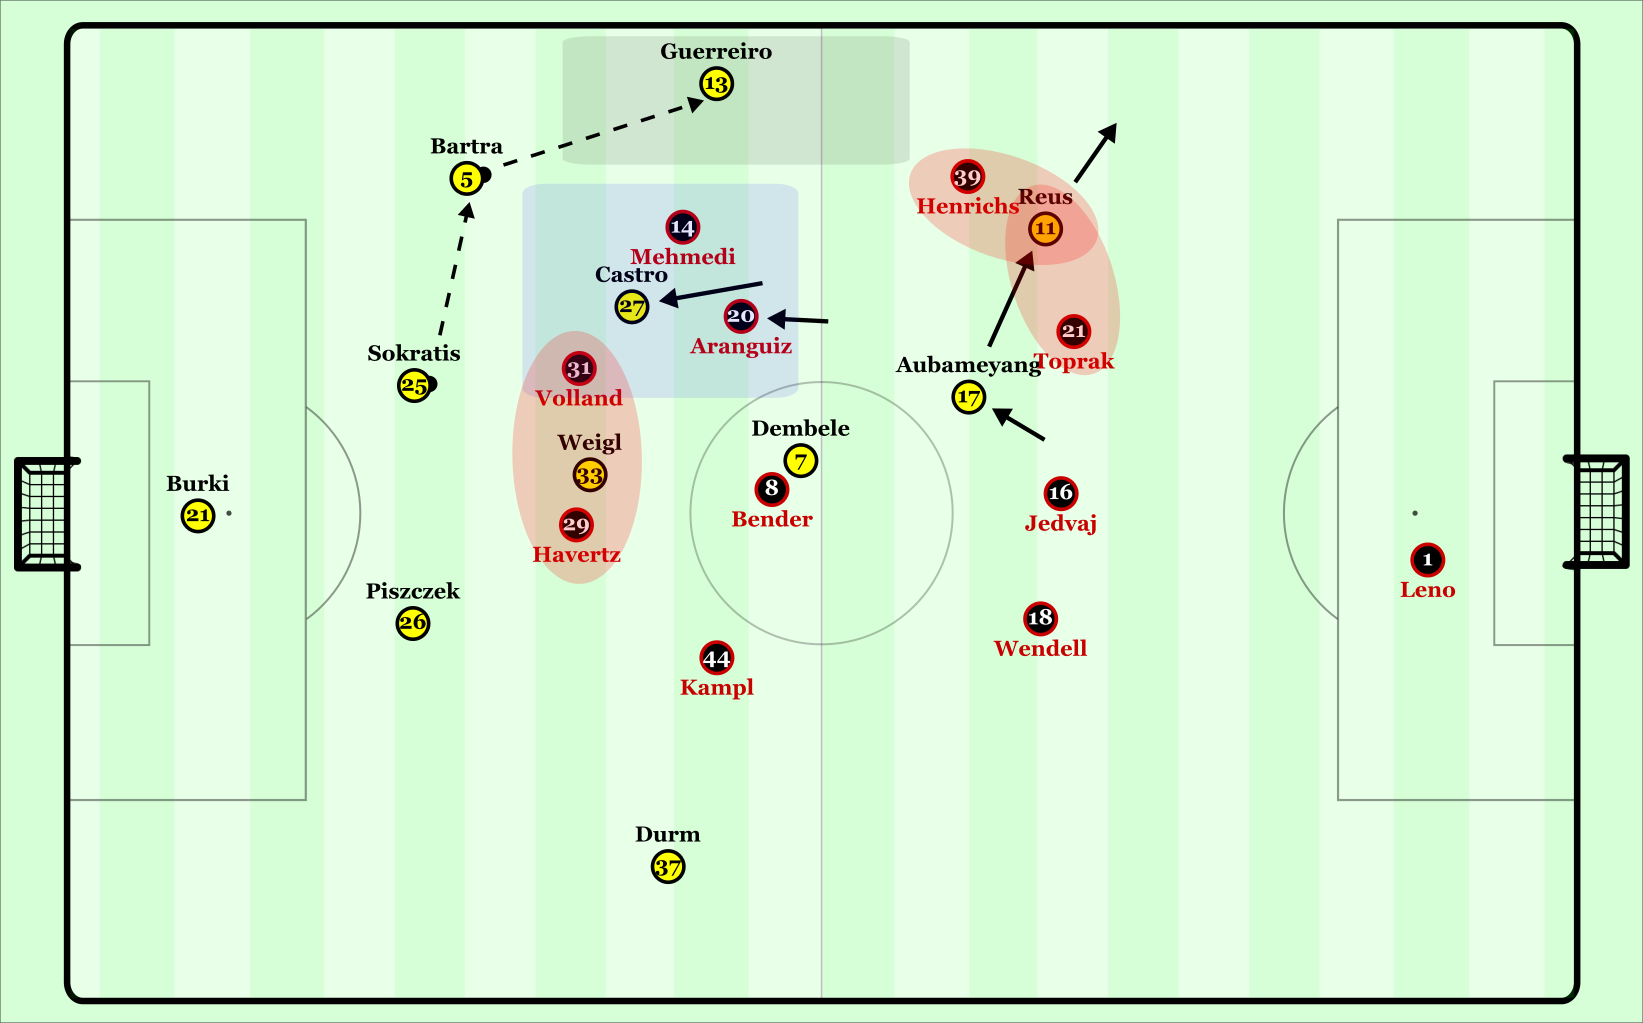 Dortmund's build-up through the left.